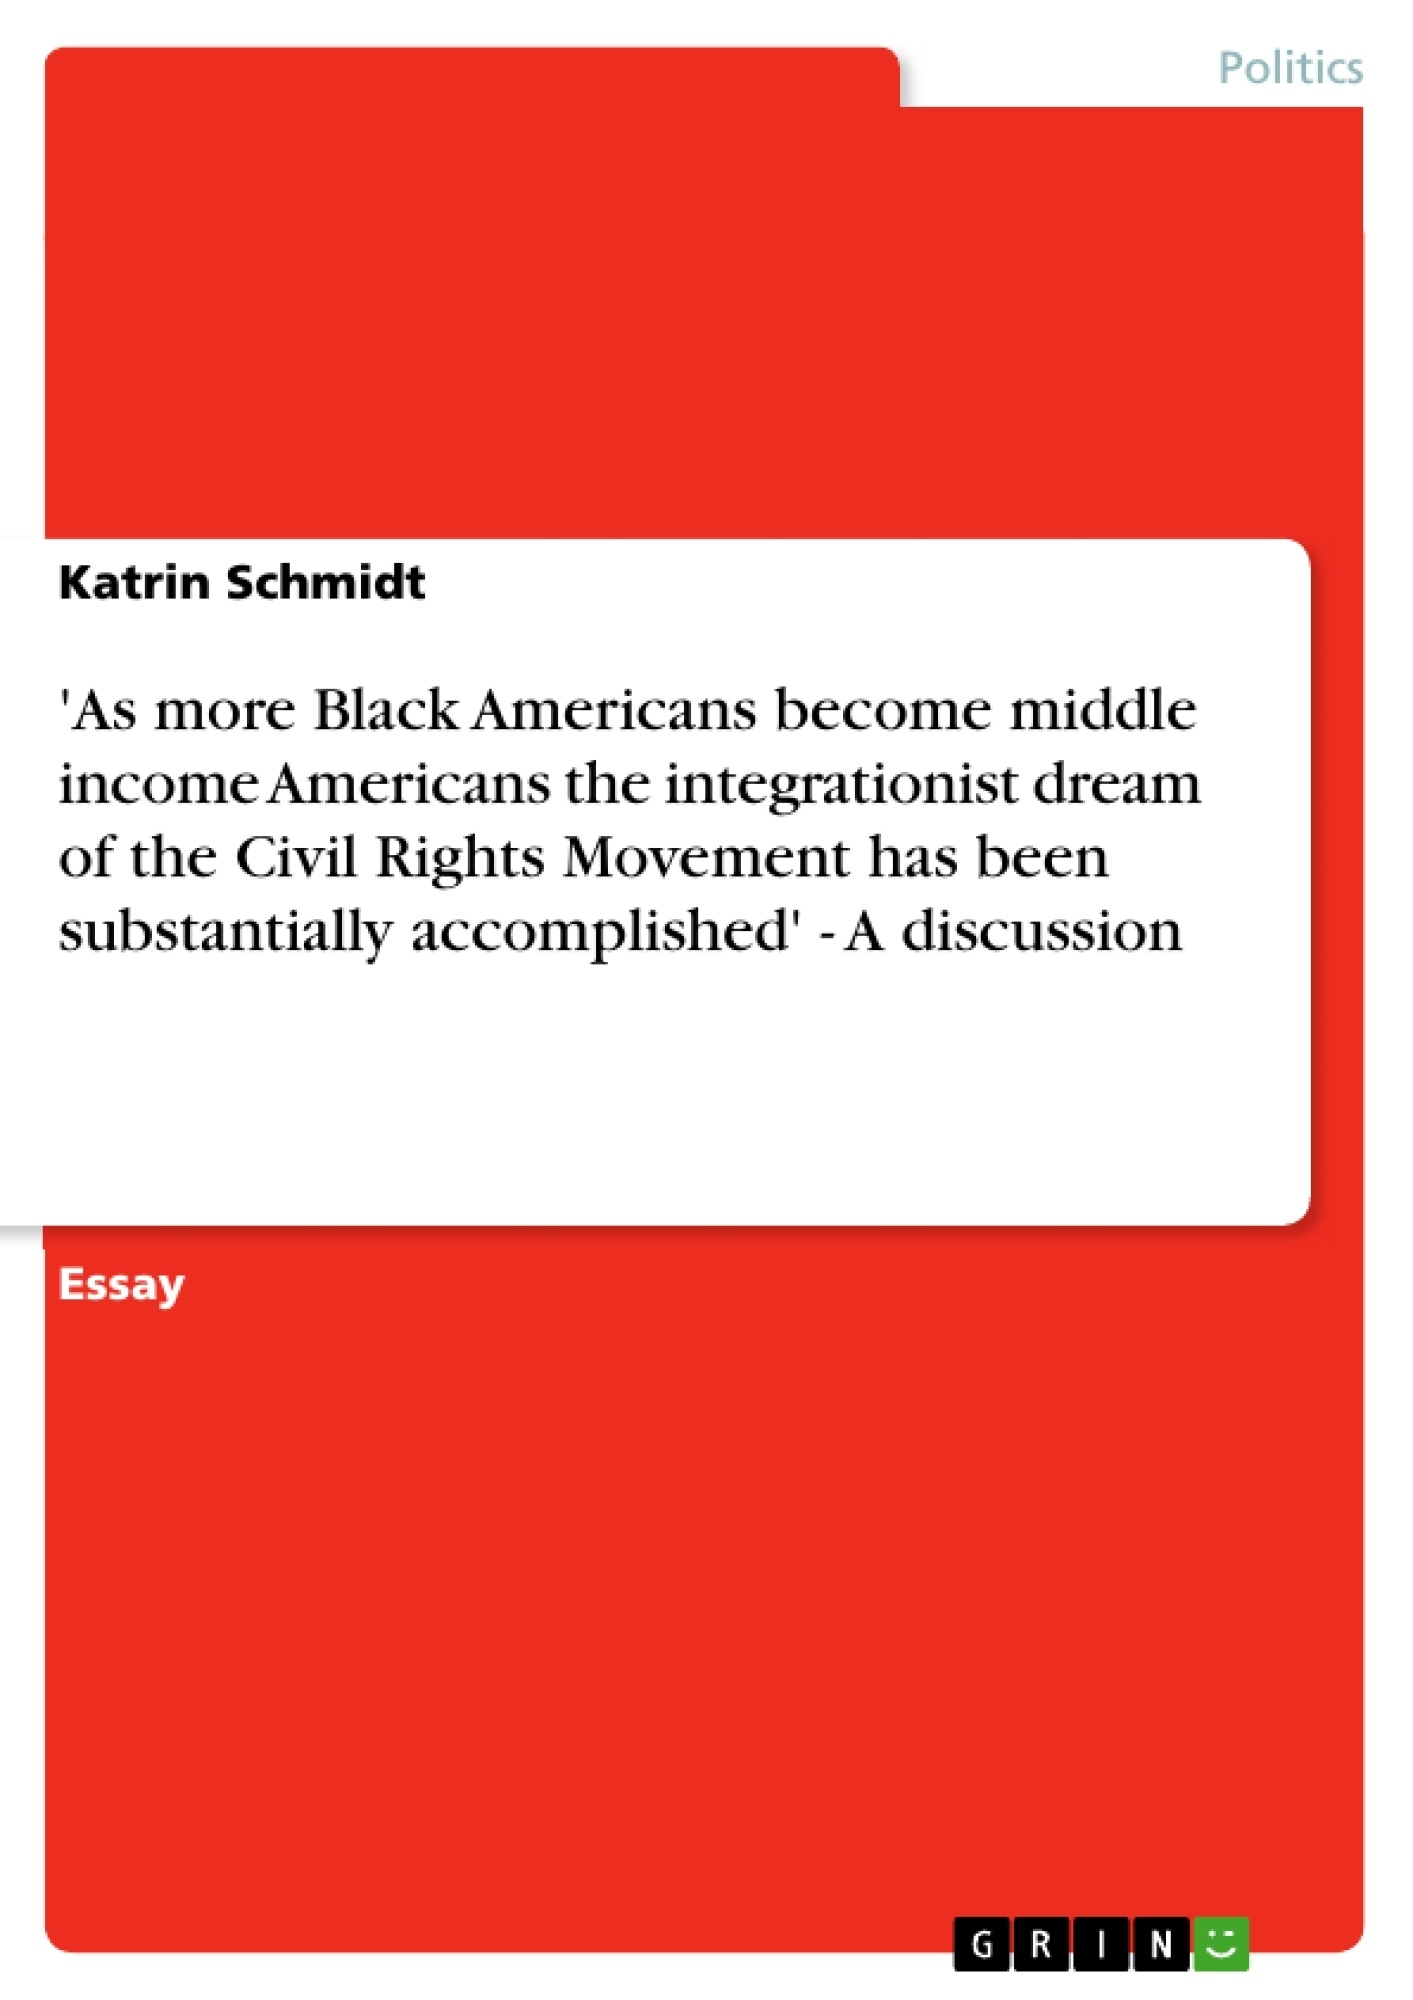 Title: 'As more Black Americans become middle income Americans the integrationist dream of the Civil Rights Movement has been substantially accomplished' - A discussion